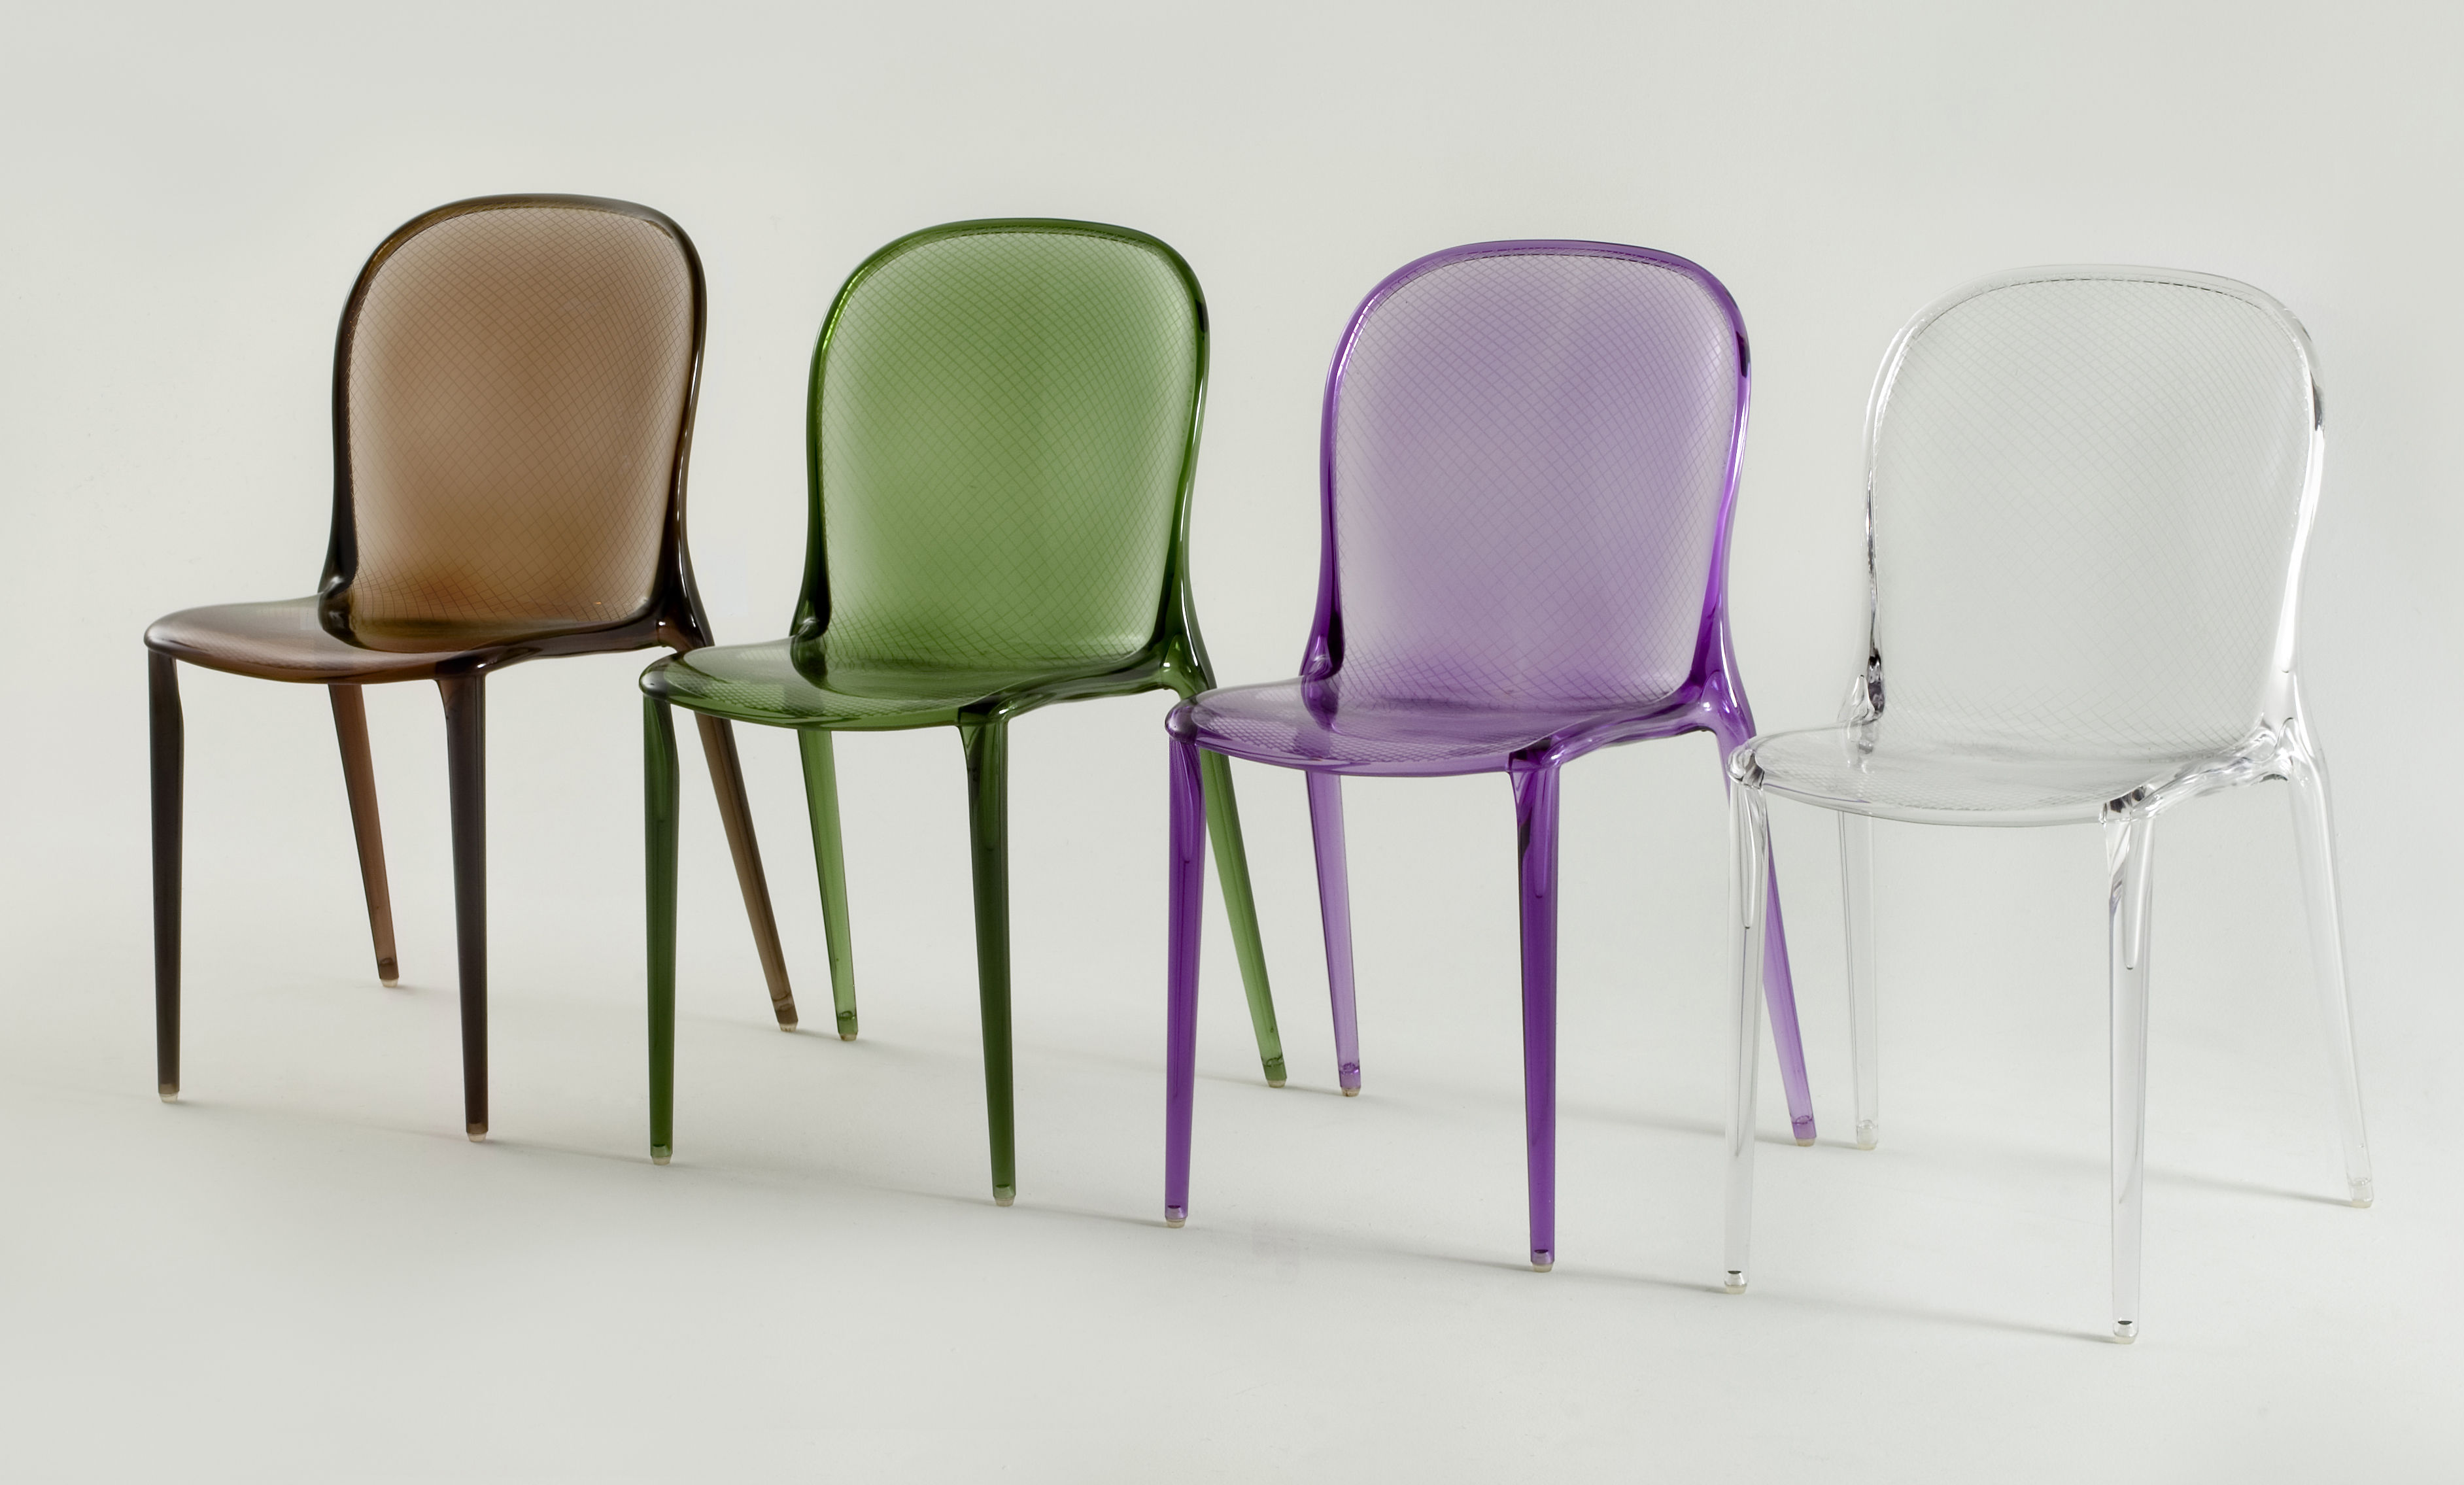 Chaise empilable thalya transparente polycarbonate cristal kartell - Chaise kartell transparente ...